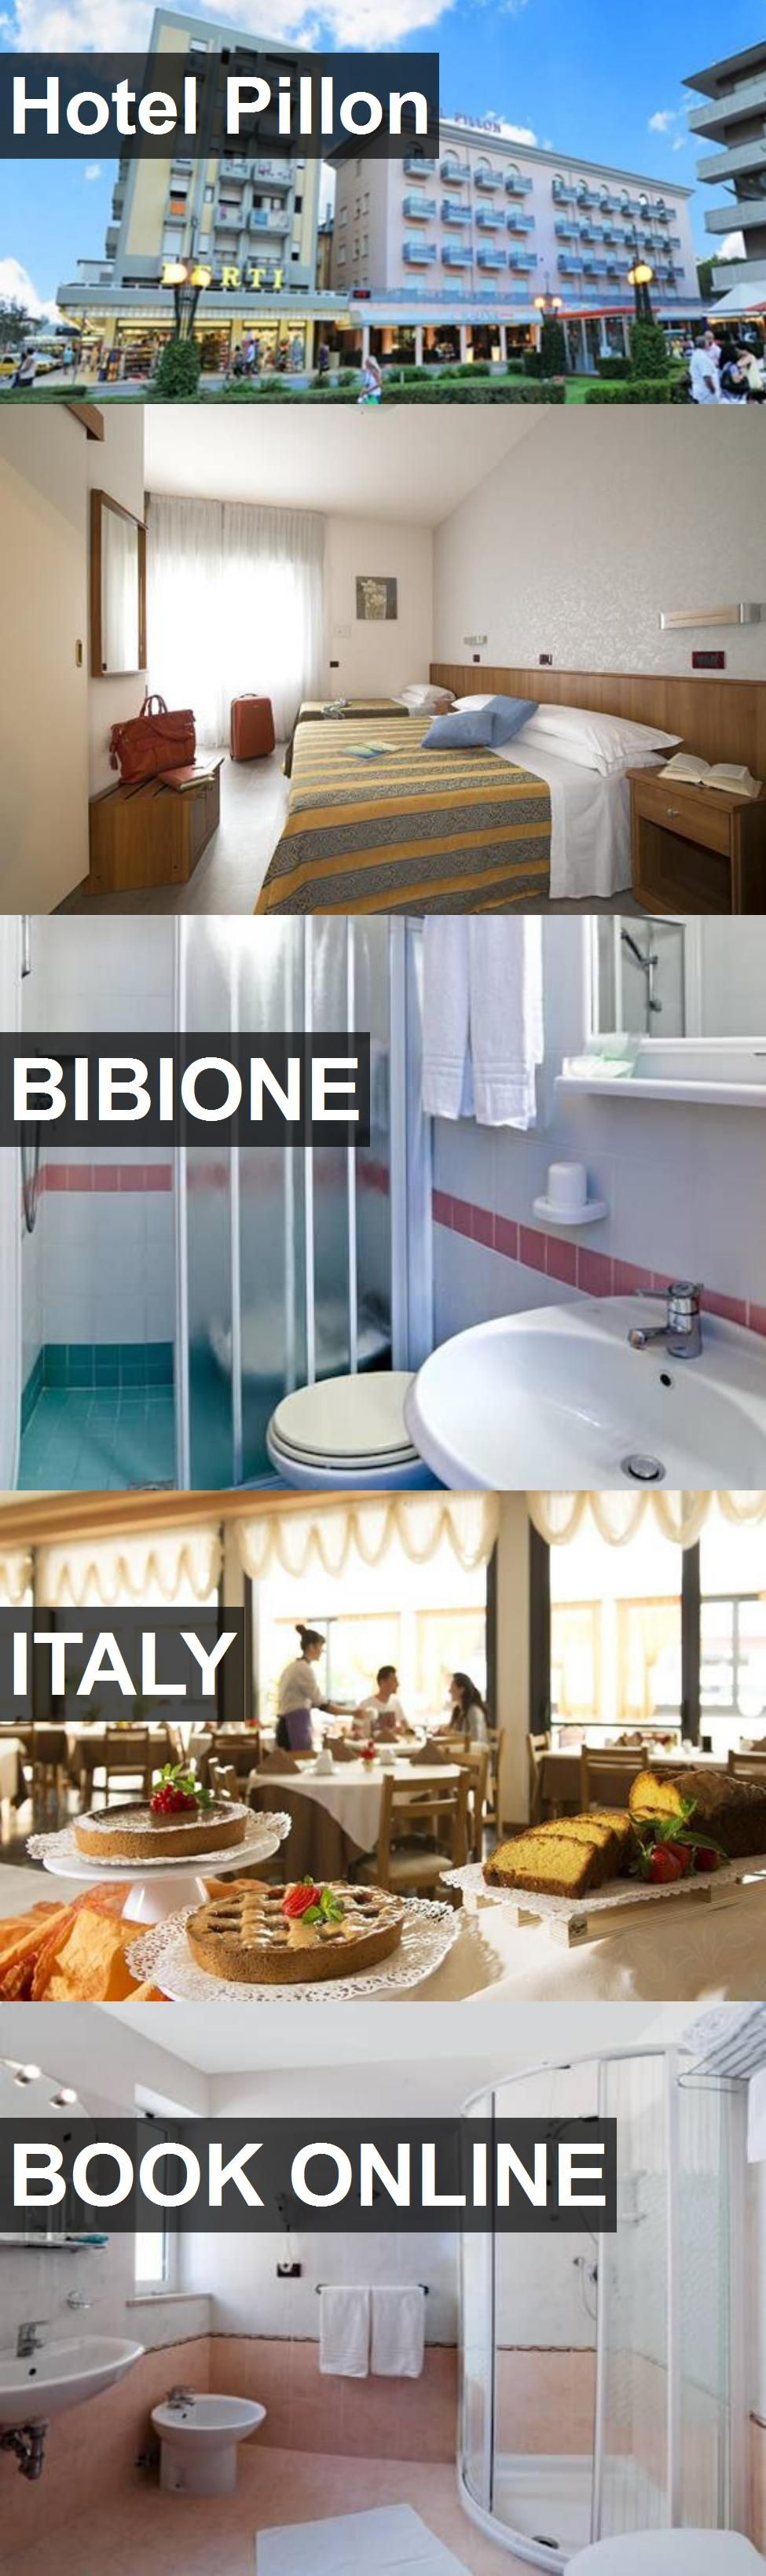 Hotel Pillon in Bibione, Italy. For more information